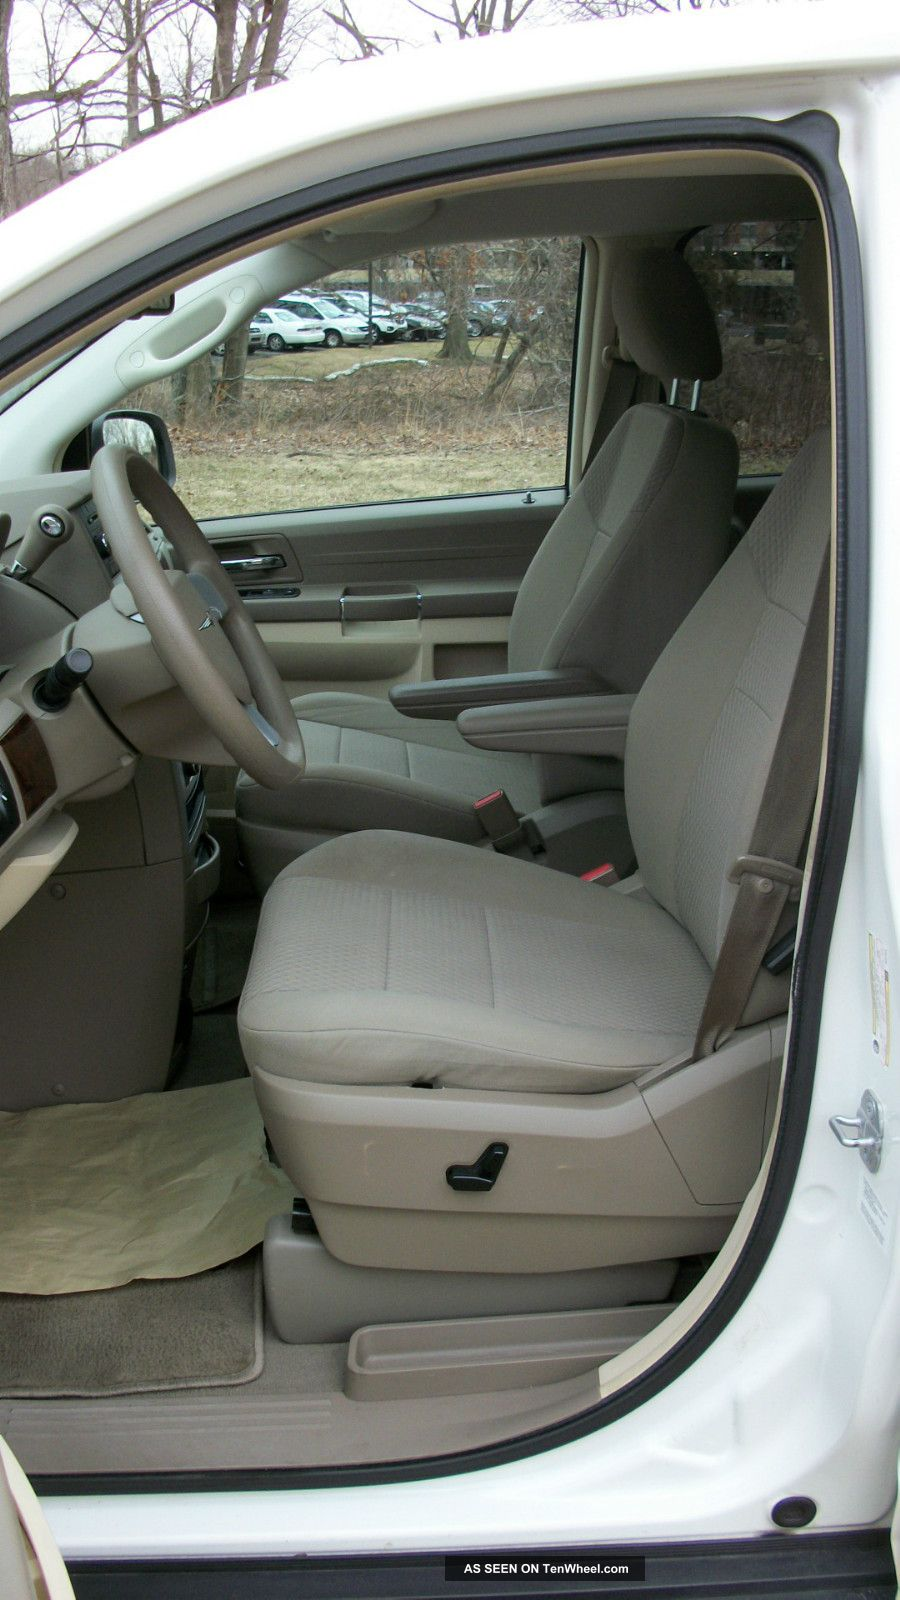 2012 honda odyssey consumer reviews new cars used cars car html autos weblog. Black Bedroom Furniture Sets. Home Design Ideas